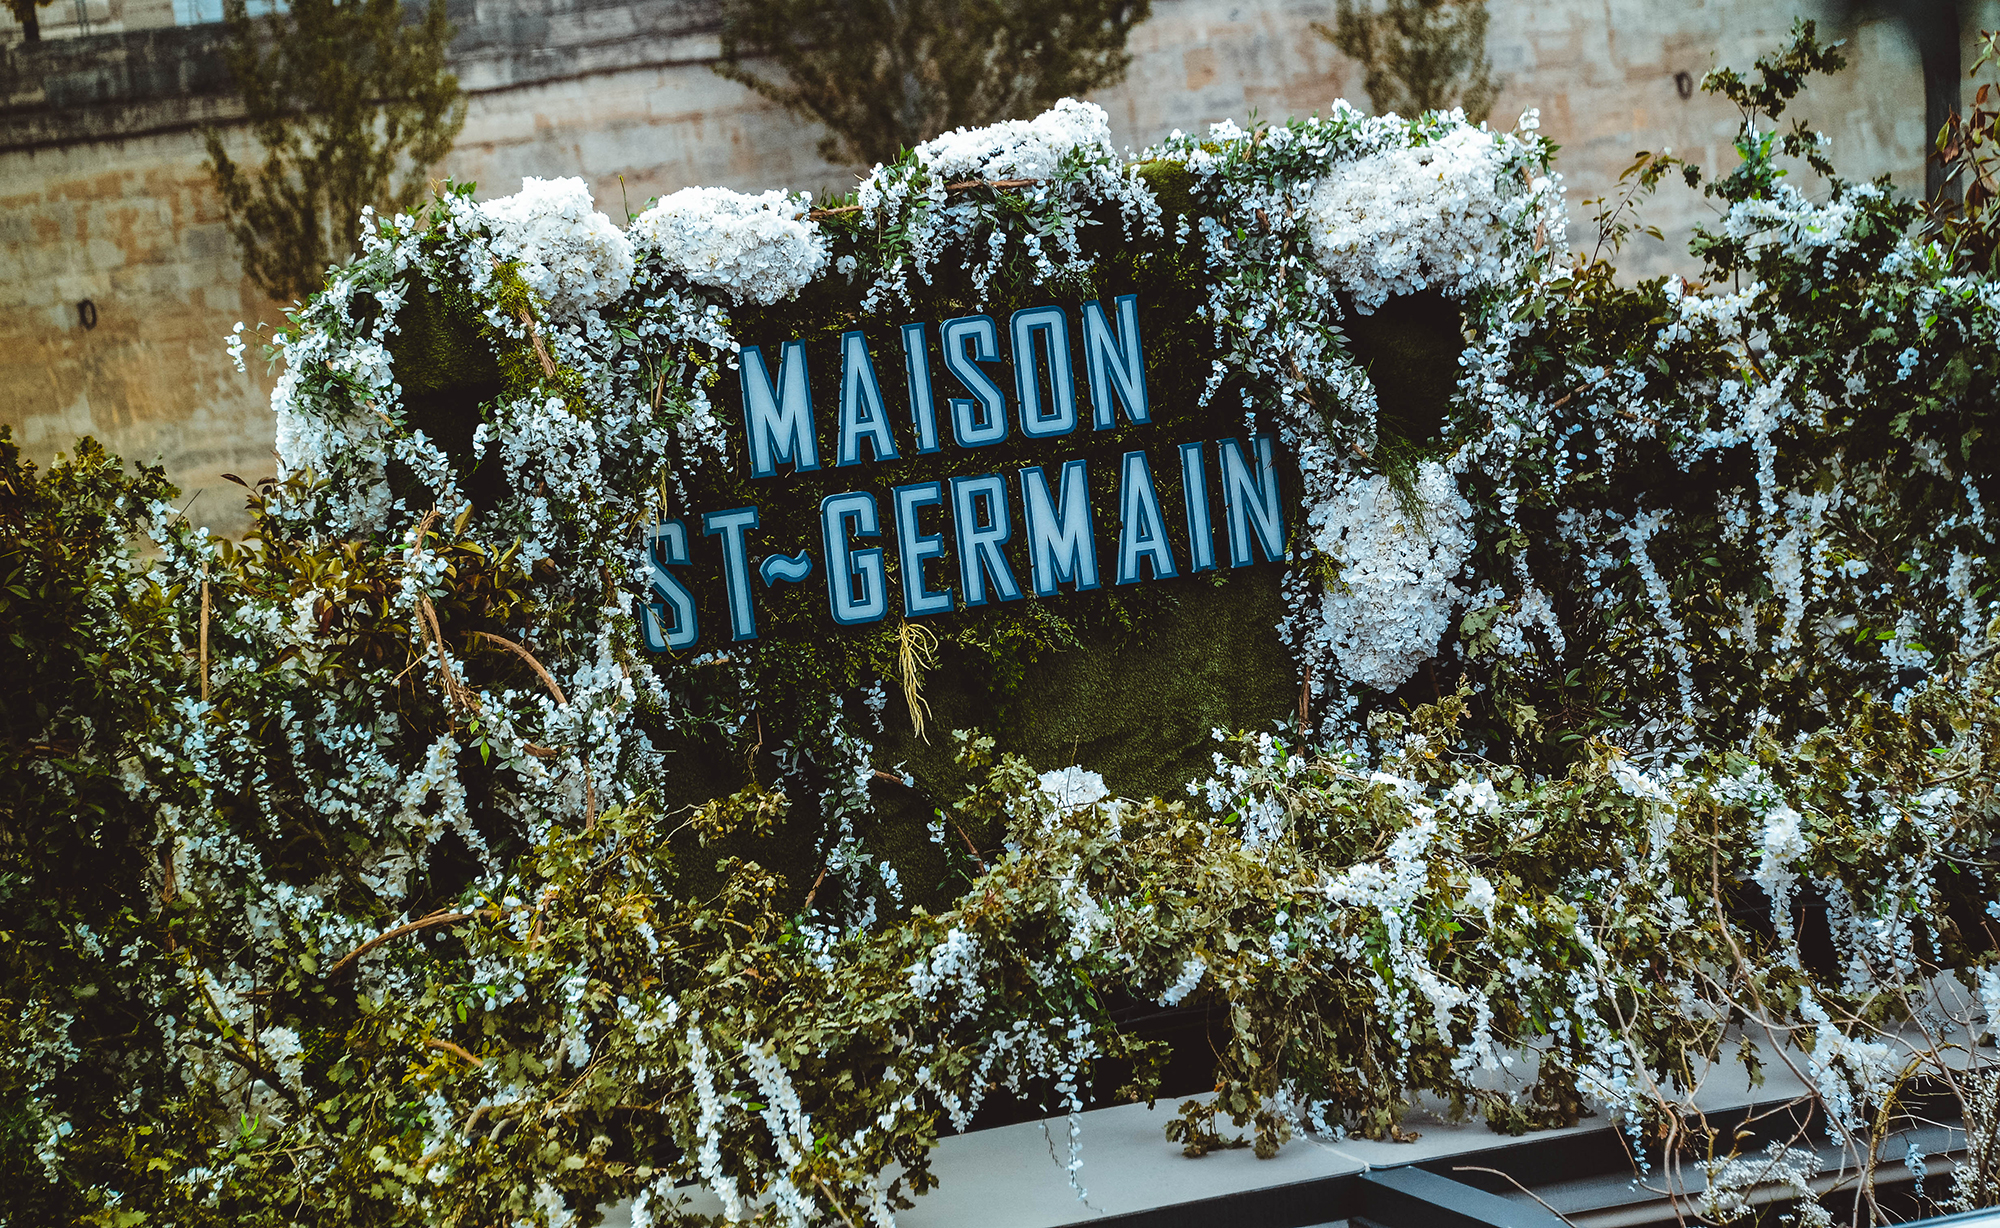 Agence1969 - How to showcase the Maison St-Germain event on digital?